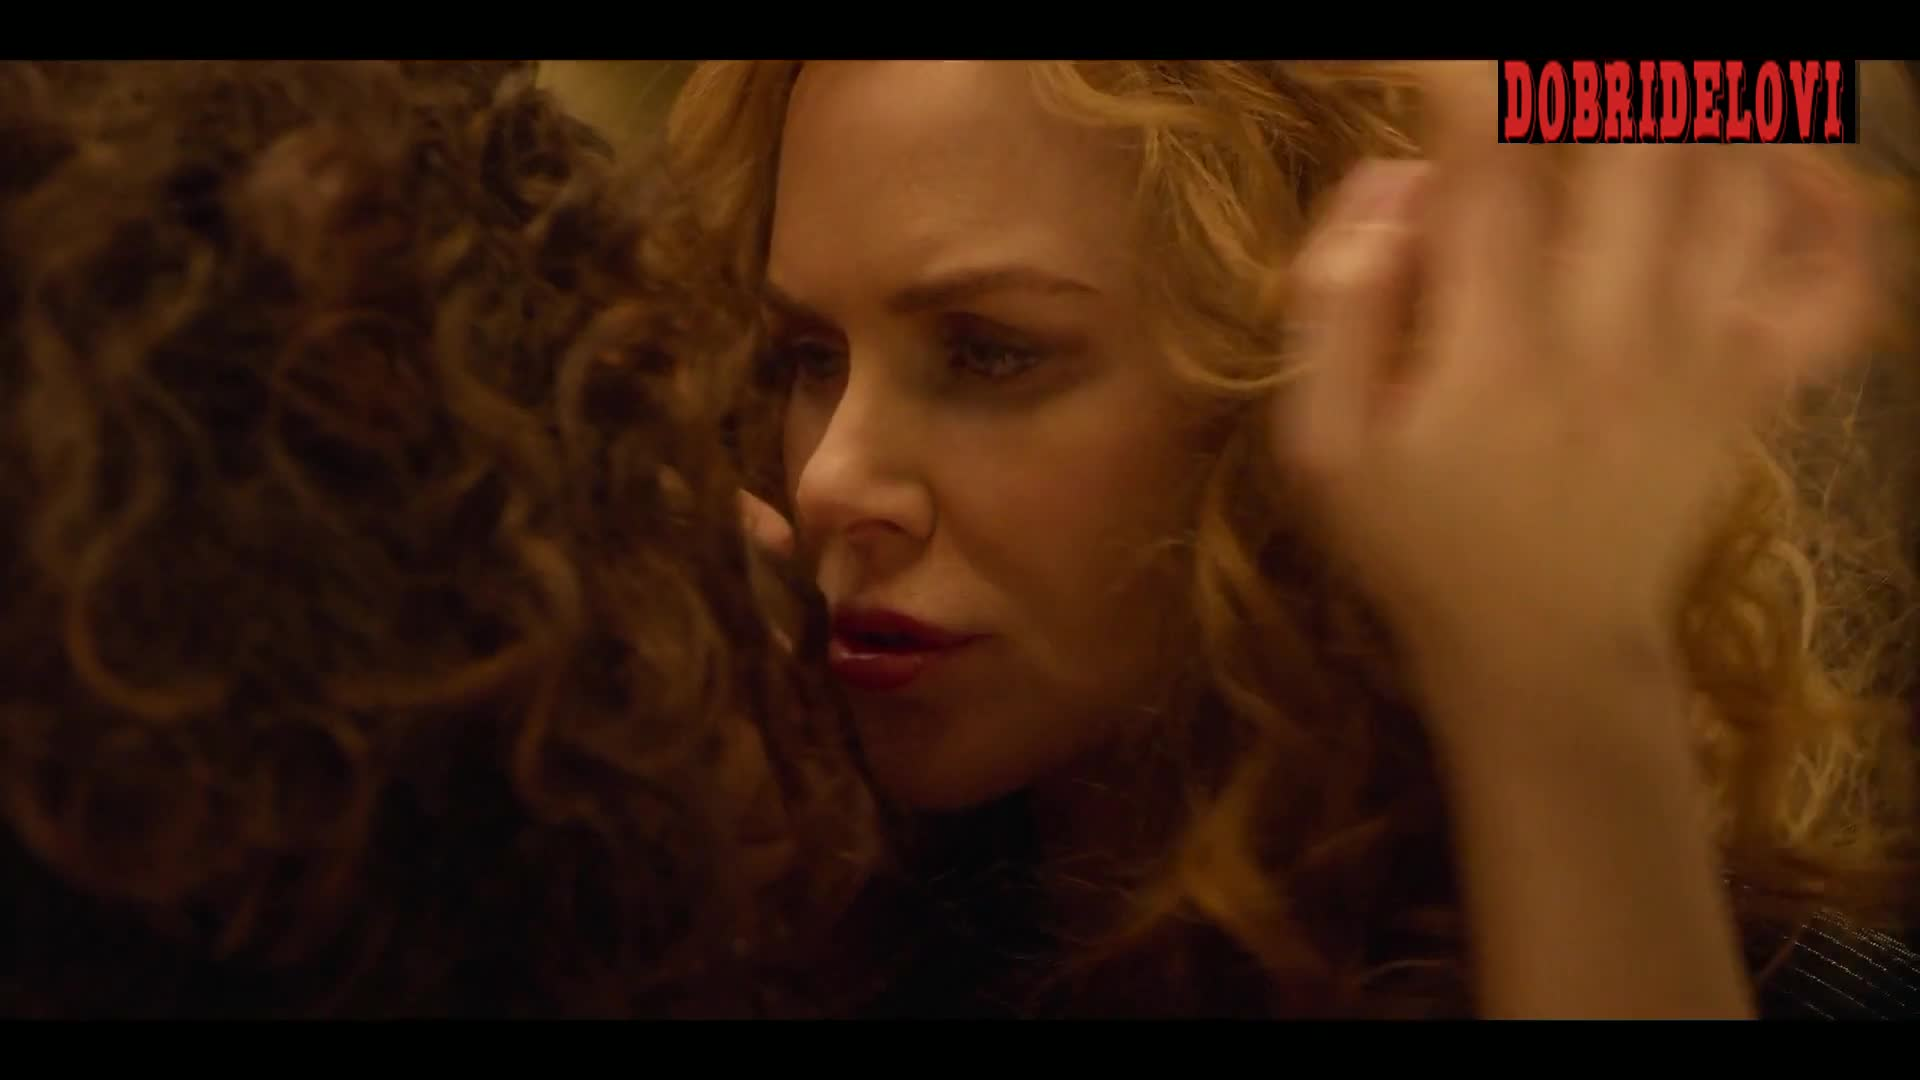 Nicole Kidman and Matilda De Angelis lesbian scene from The Undoing